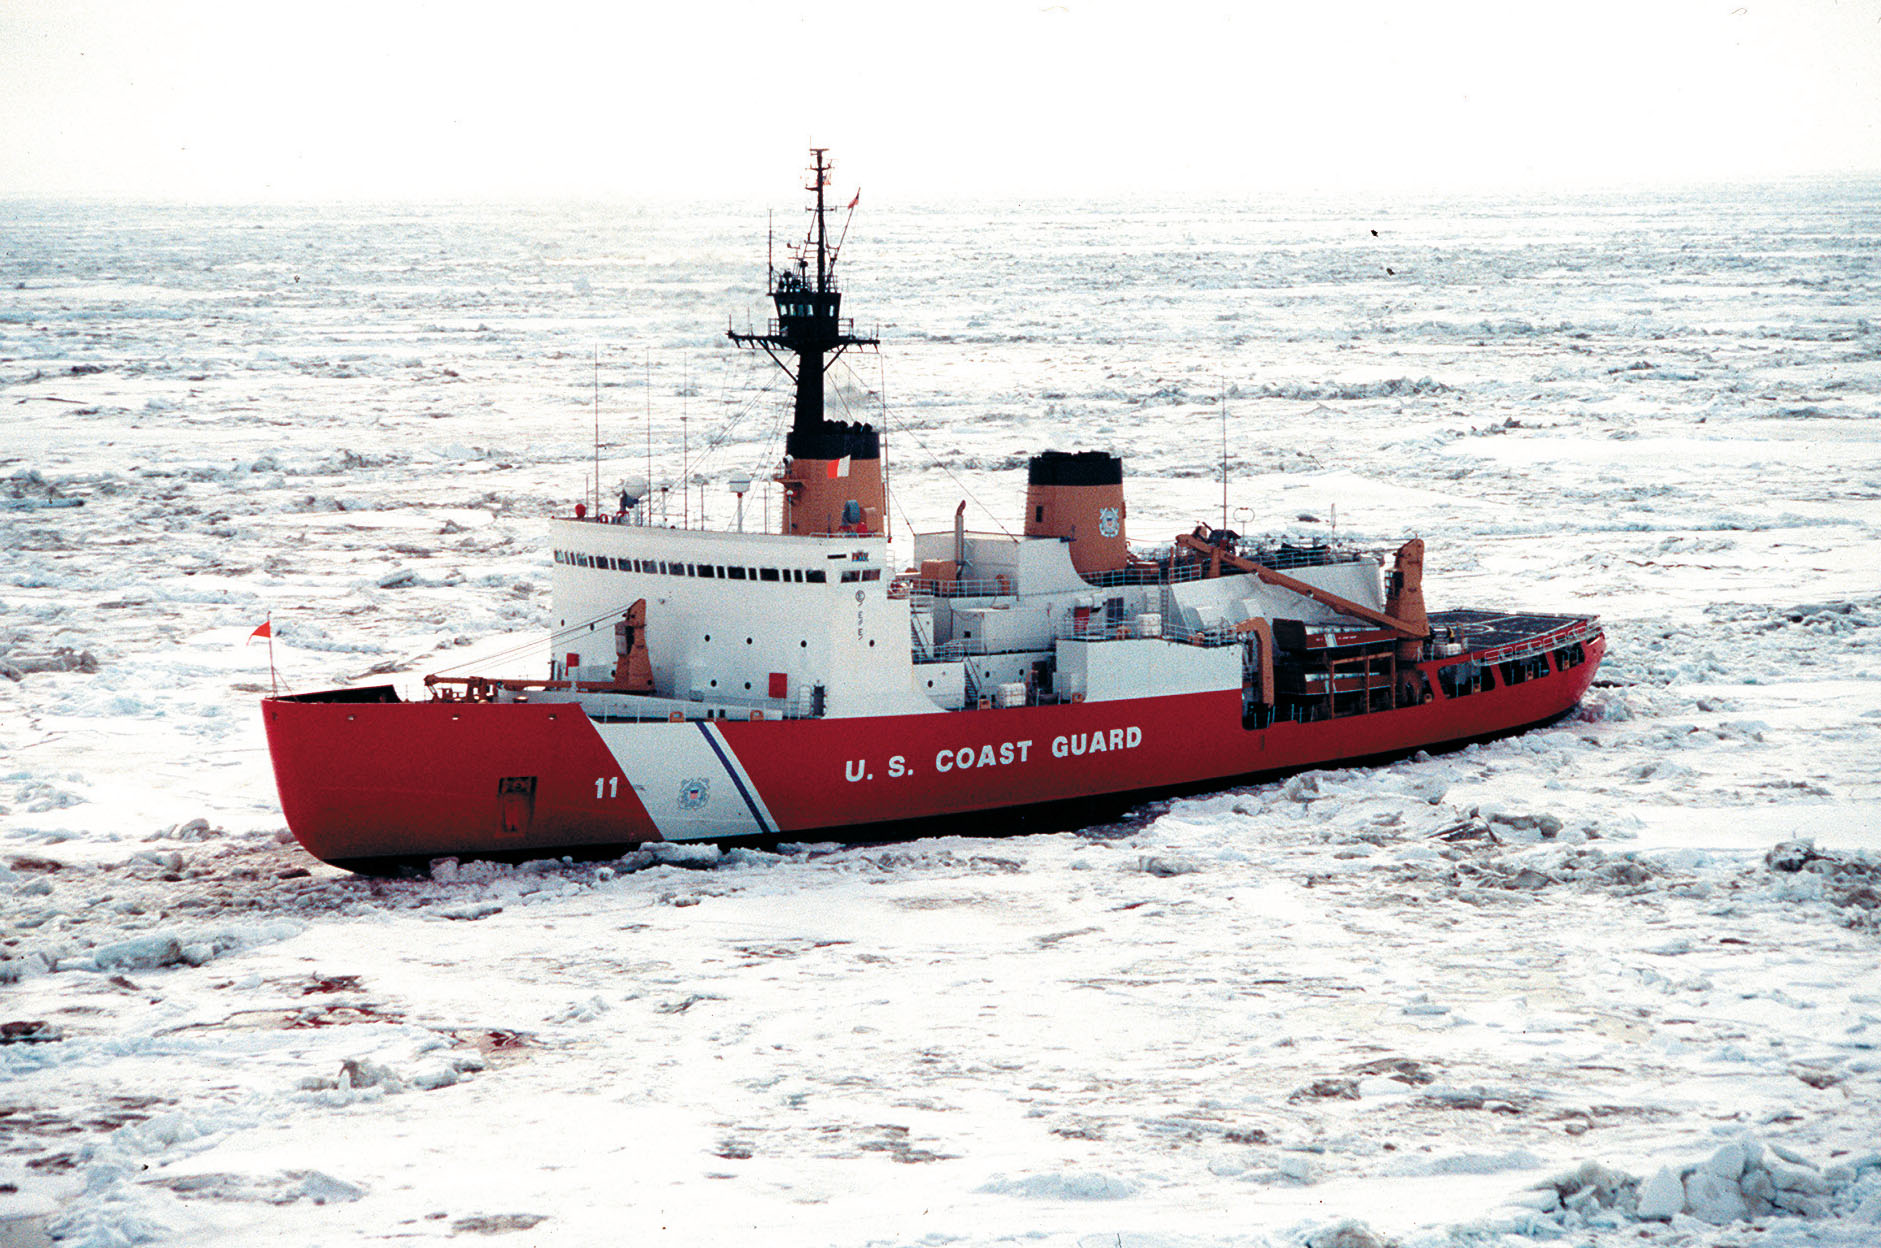 Coast Guard Icebreaker Polar Star ready for service: View of the Polar Star in the West Arctic during 1996 - USCG Photo by PA3 Andy Devilbiss